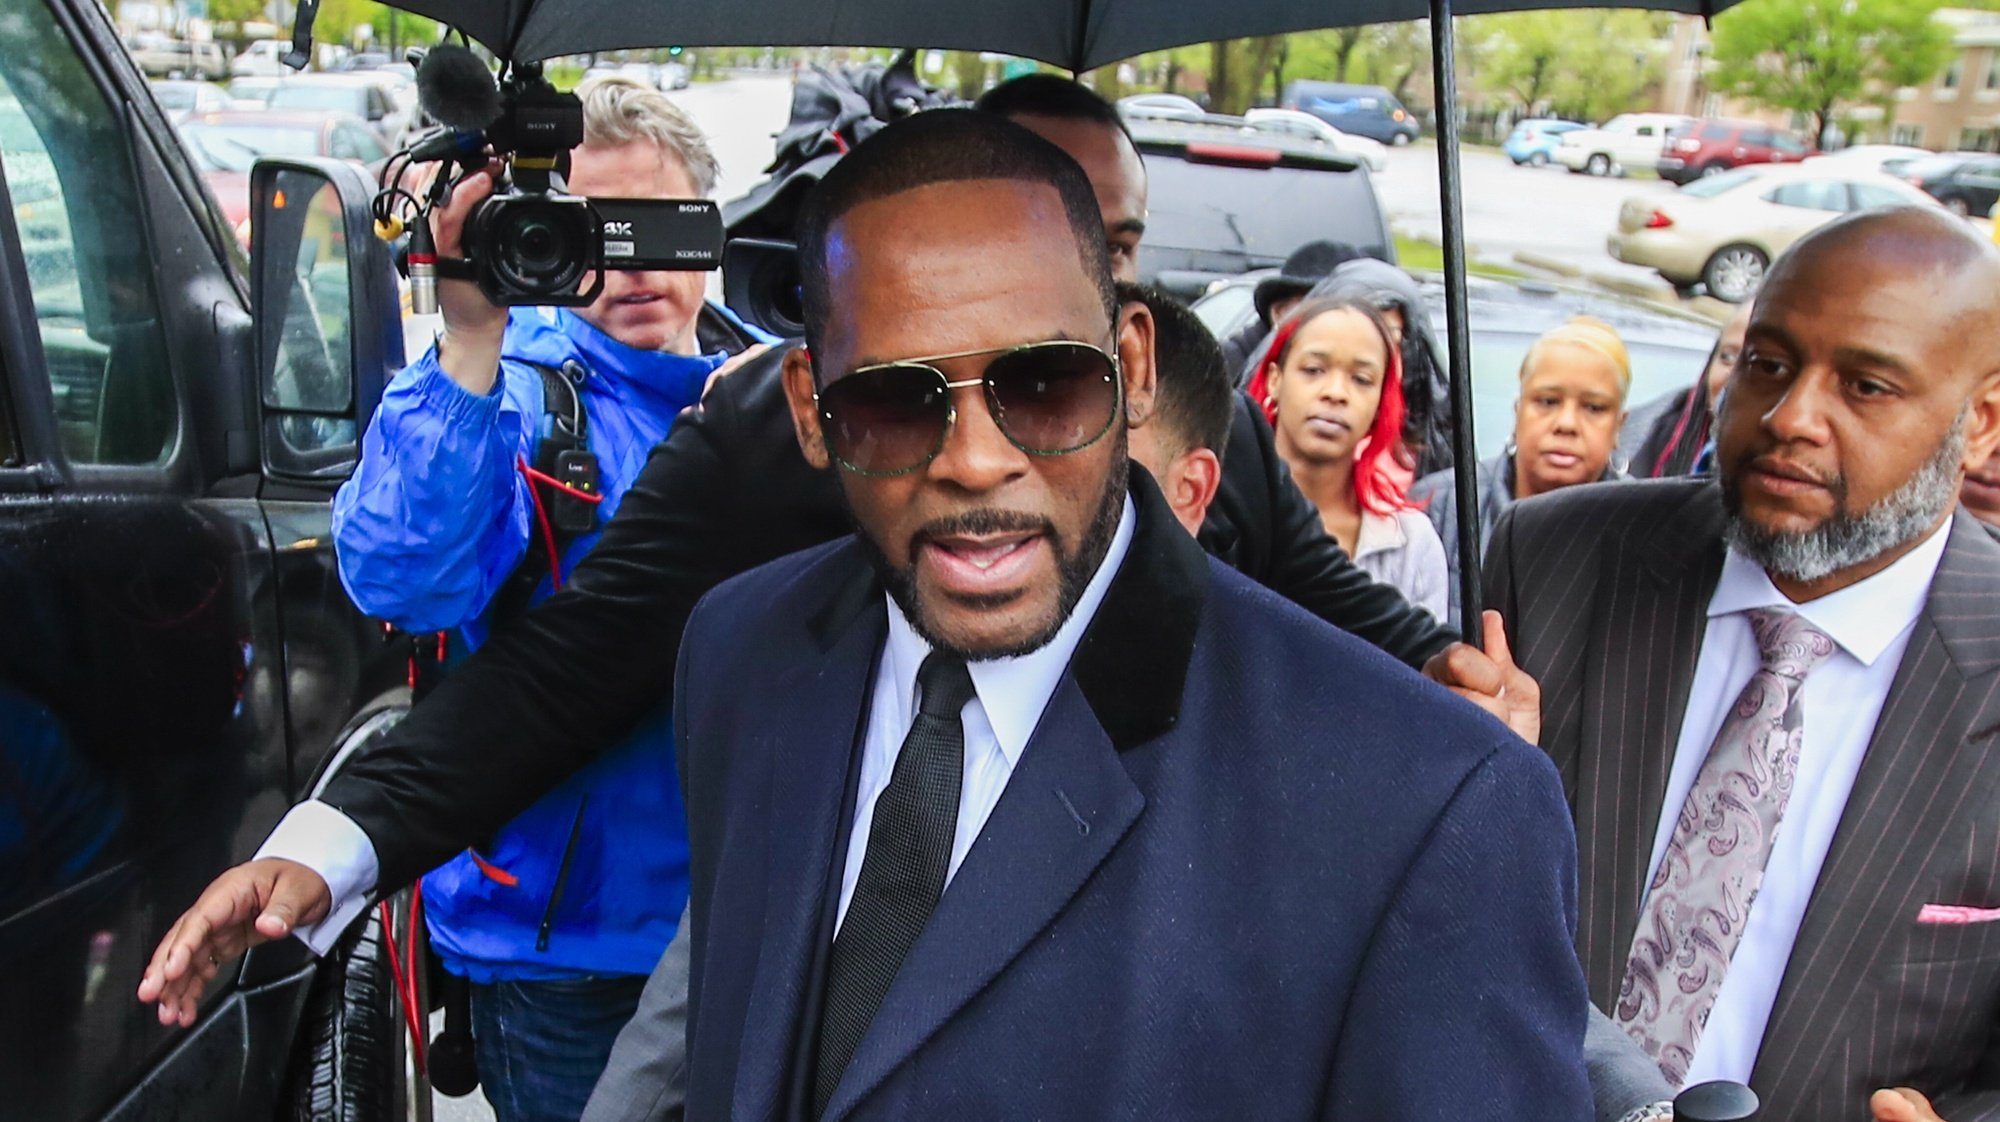 epa09492087 (FILE) - US R&B singer R. Kelly approaches his vehicles as he leaves court at the Leighton Criminal Courts building after a status hearing on his sexual assault charges in Chicago, Illinois, USA, 07 May 2019 (reissued 27 September 2021). R. Kelly, whose full name is Robert Sylvester Kelly, has been found guilty of racketeering and sex trafficking charges by a US jury on 27 September 2021.  EPA/TANNEN MAURY *** Local Caption *** 55175284